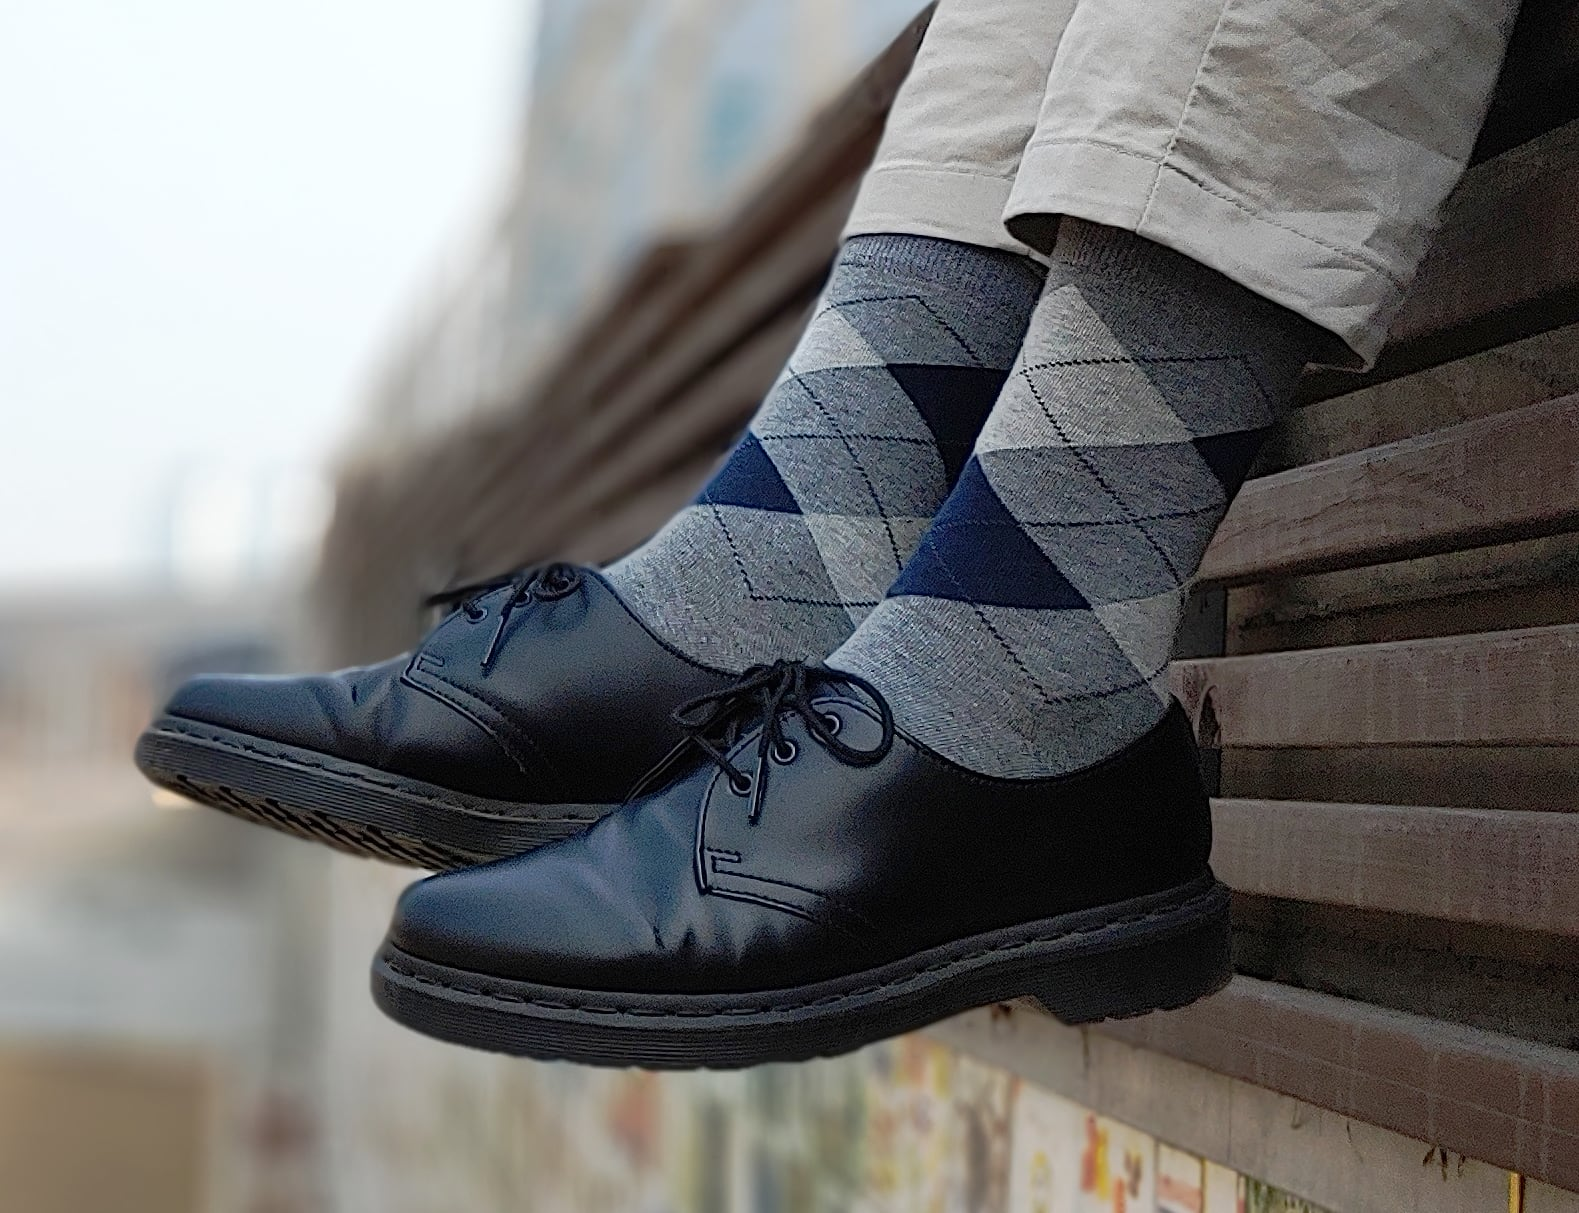 Socks No.1513 Copper-Infused Socks keep your feet smelling fresh